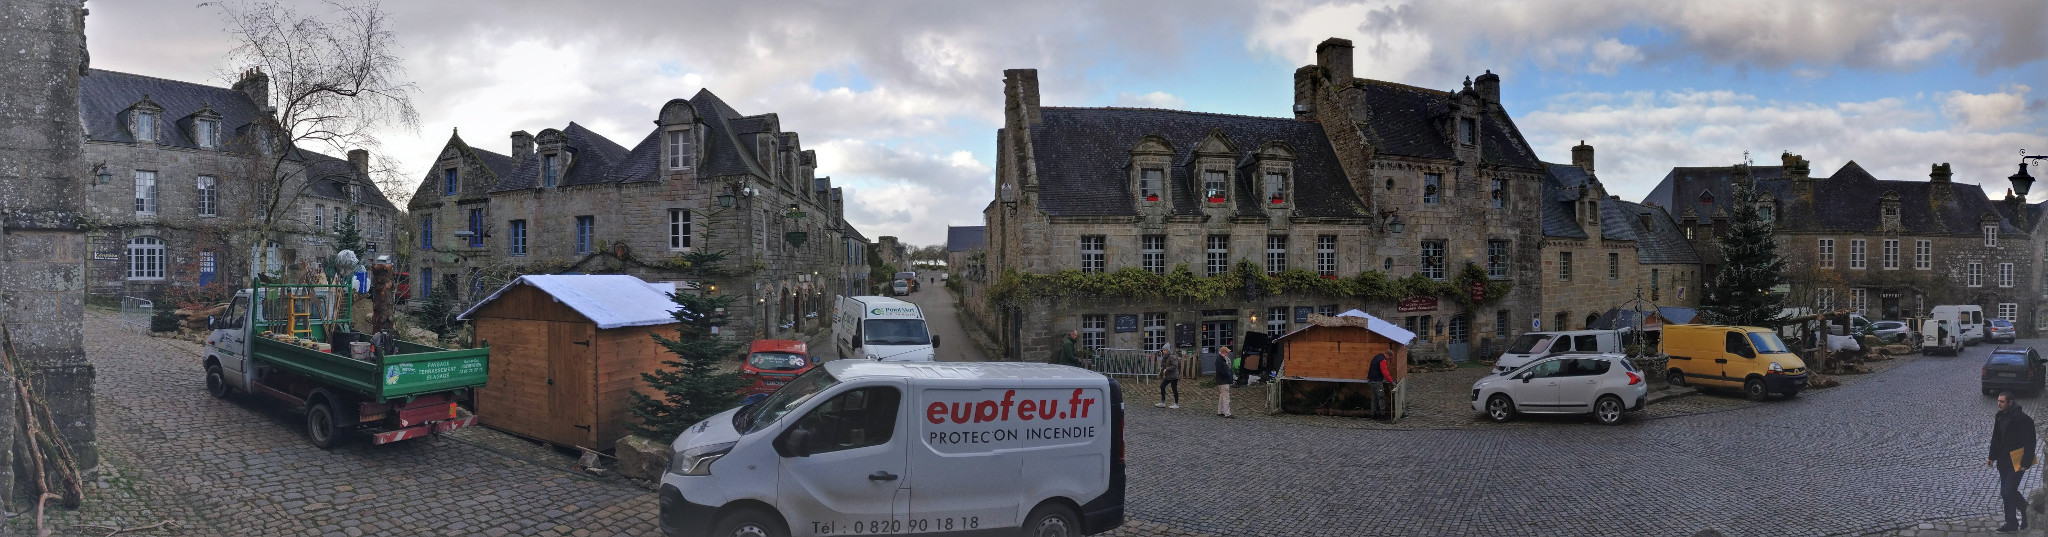 Panoramic of the Place de l'Église in Locronan